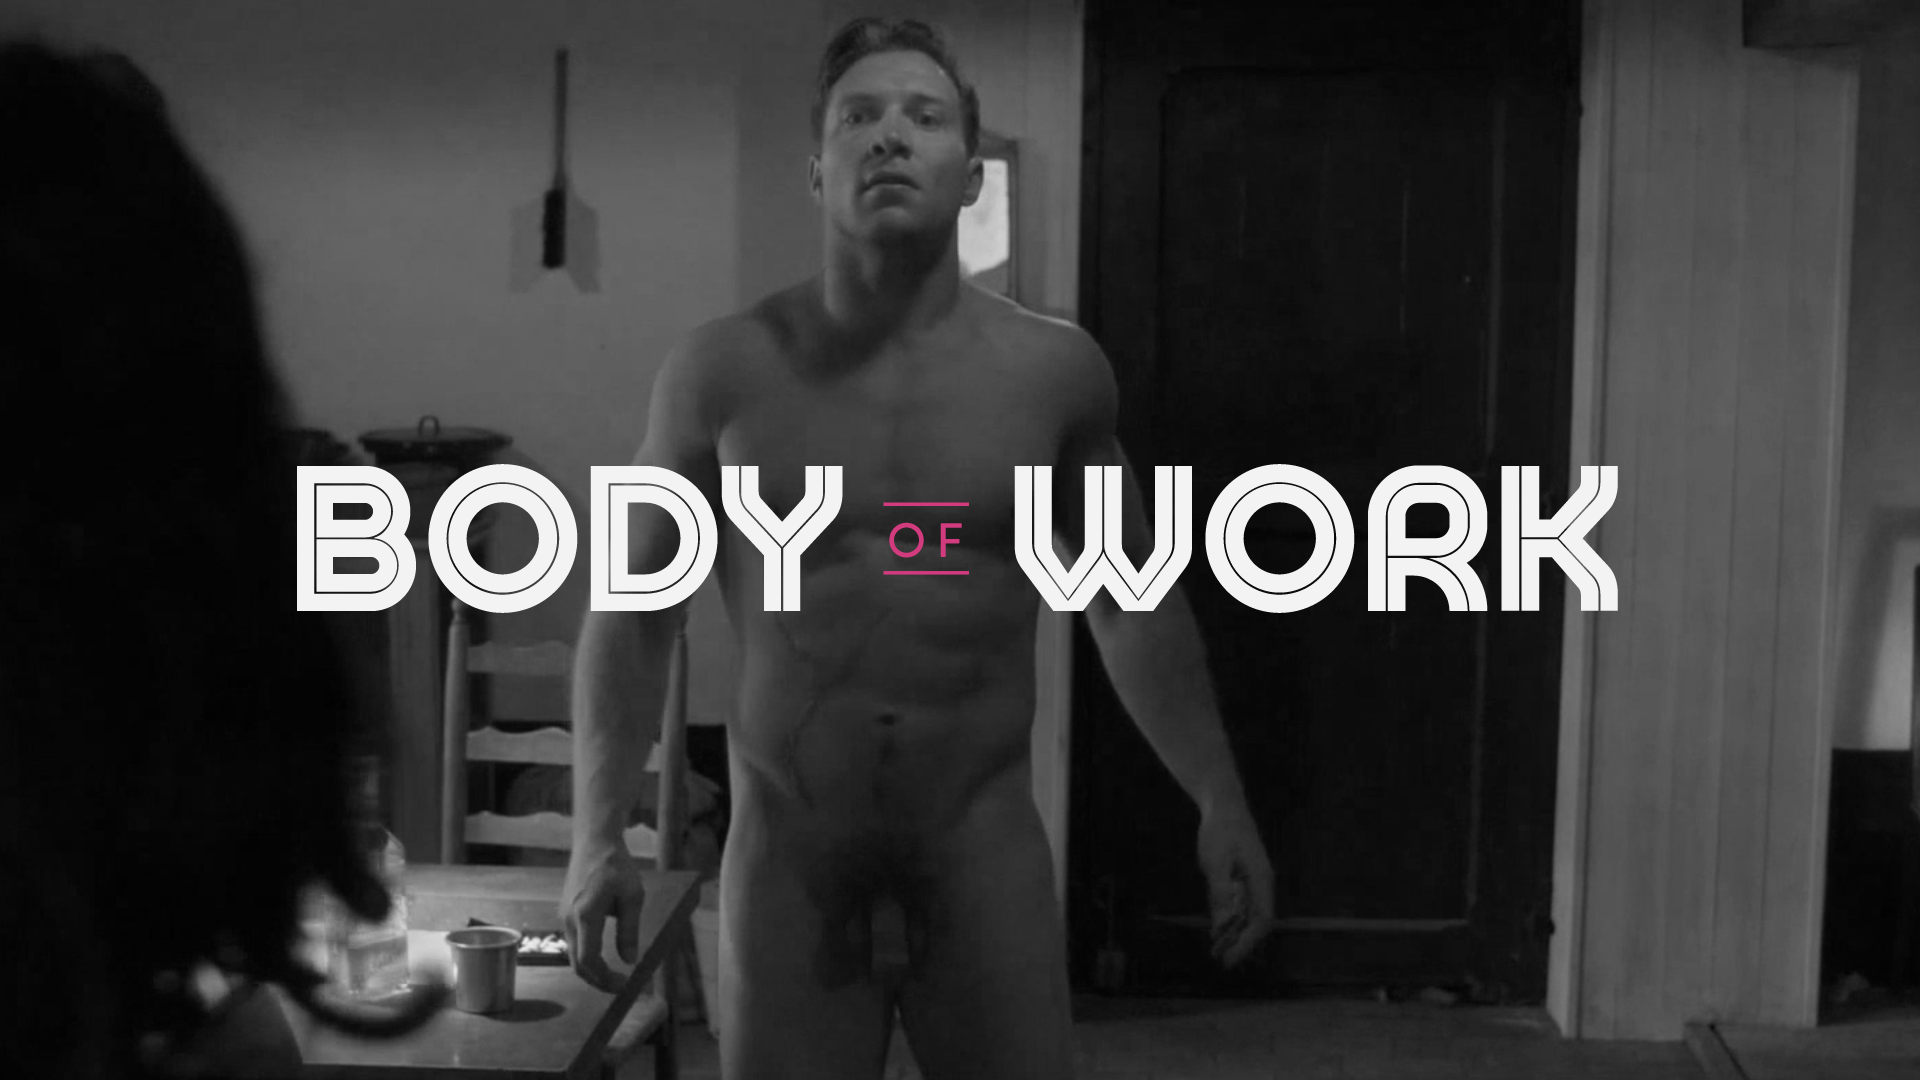 Body of Work - Jai Courtney